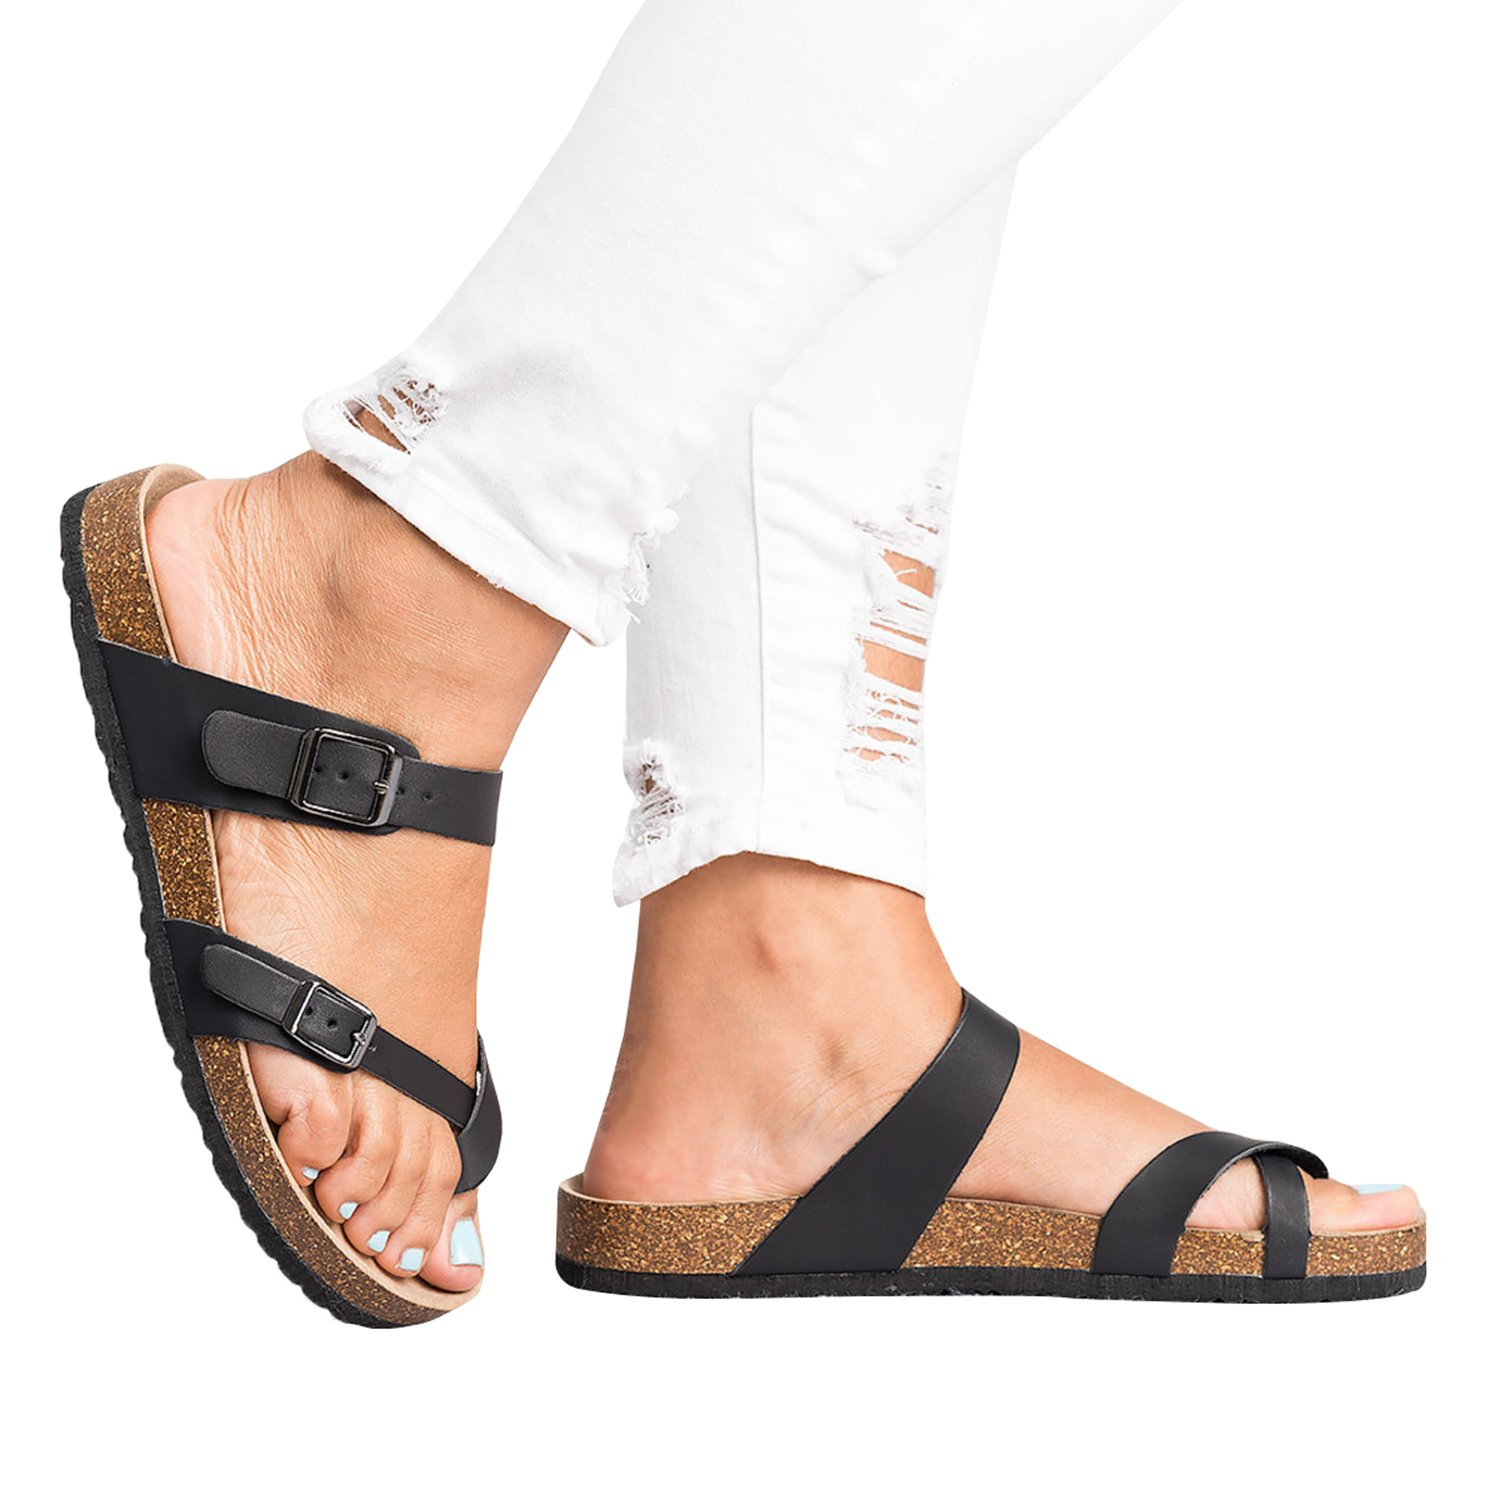 Ermonn Womens Thong Flat Sandals Gladiator Buckle Strappy Cork Sole Summer Slides by Ermonn (Image #2)